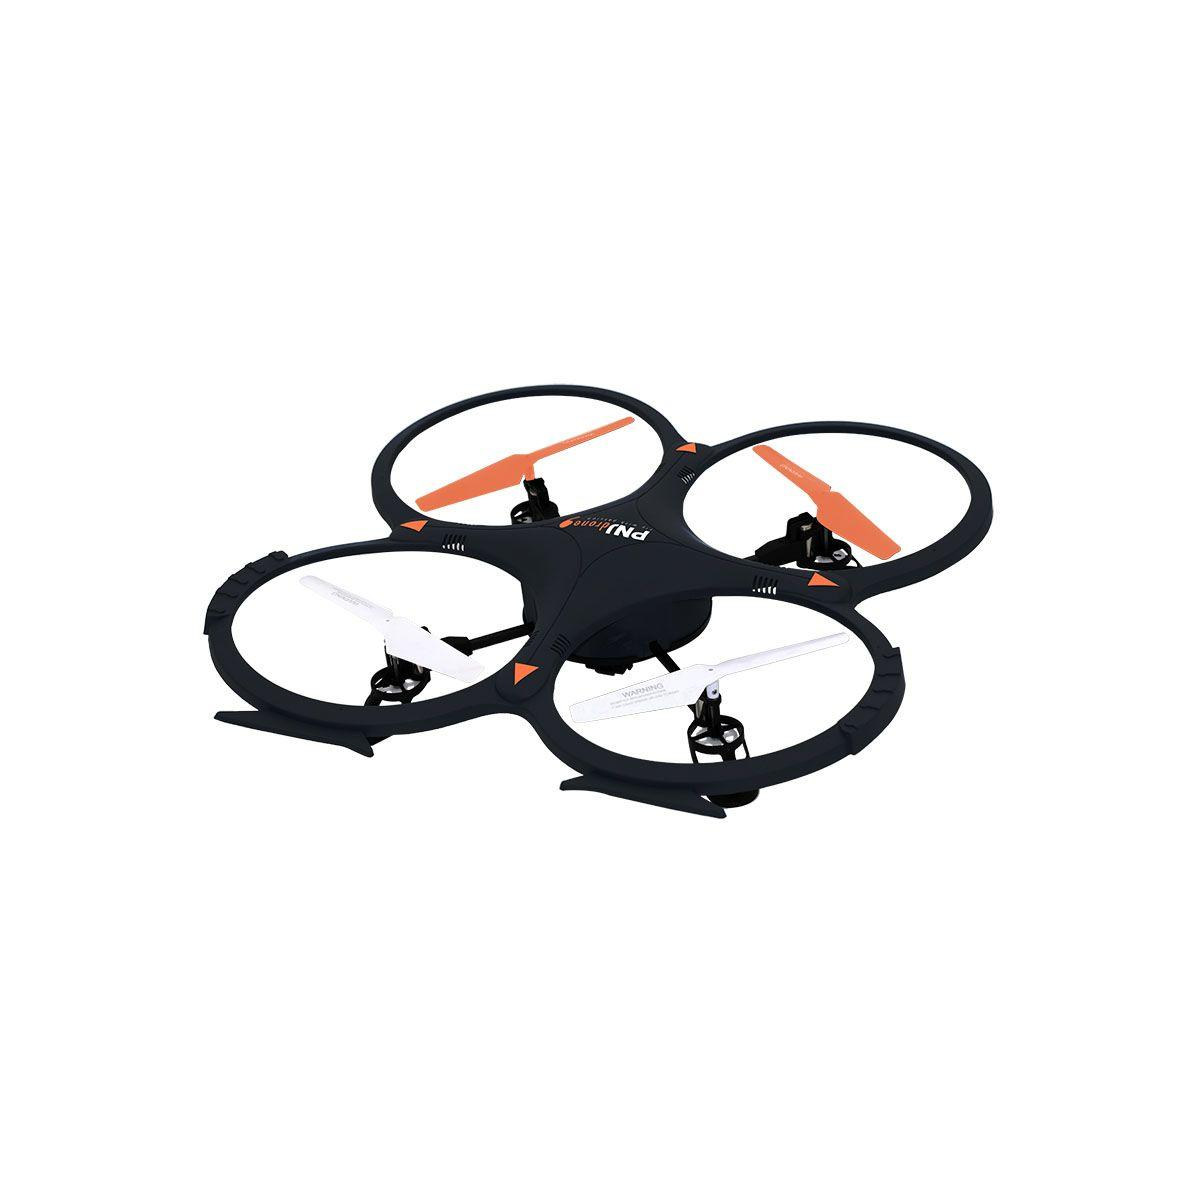 Drones pnj discovery lite (photo)